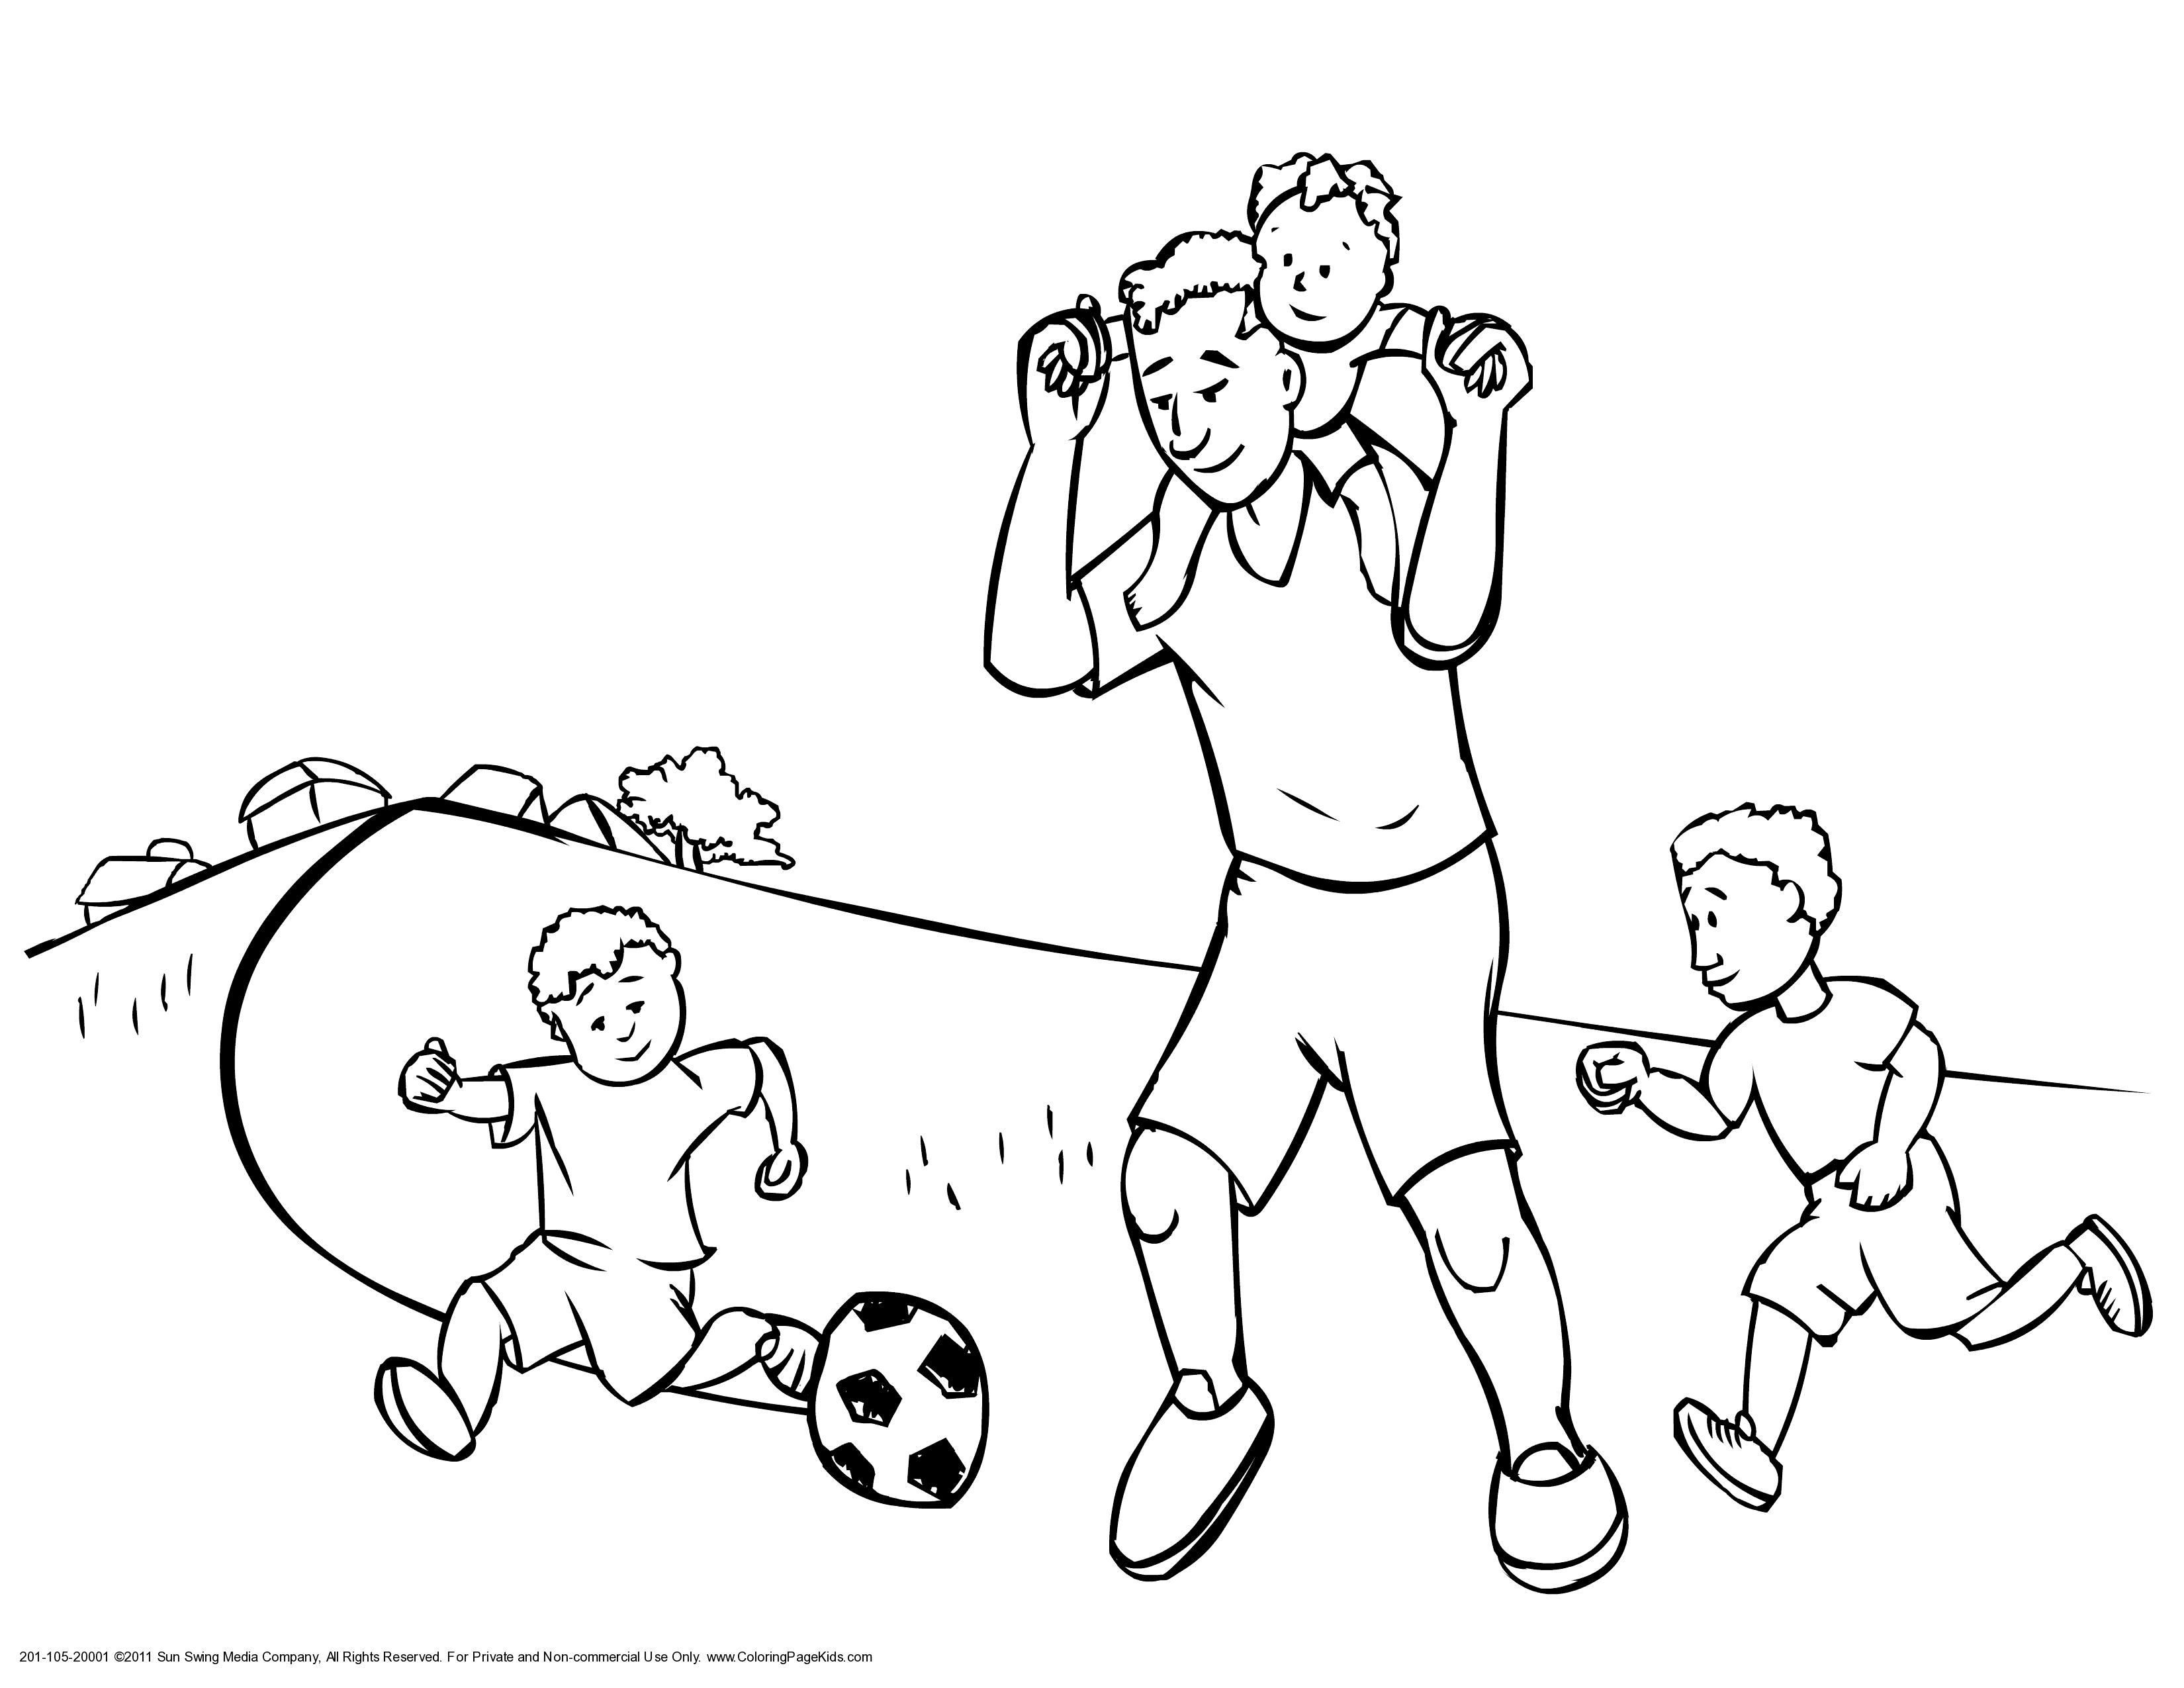 Kids Play Soccer Coloring Pages For Kids